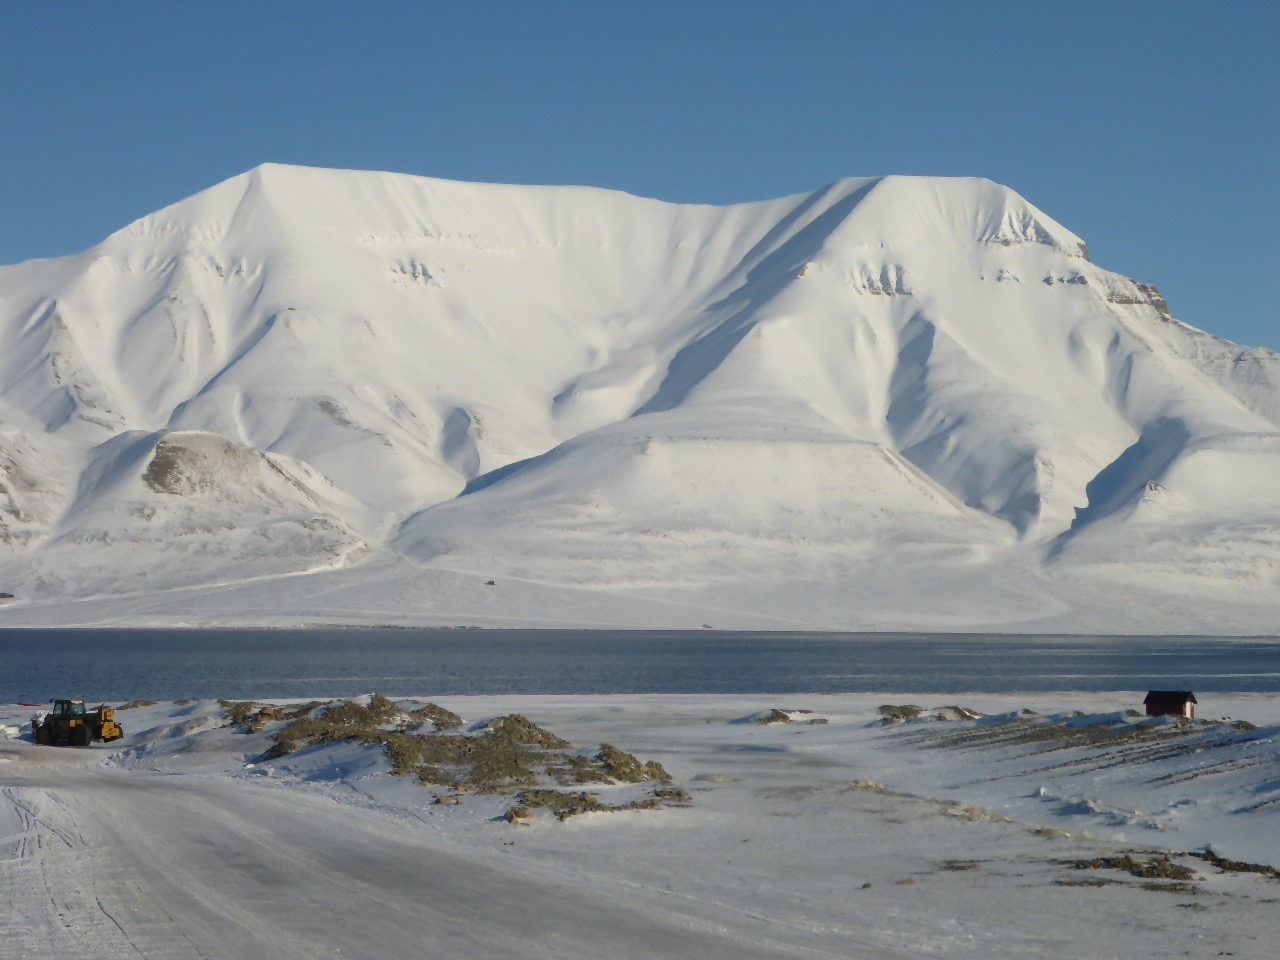 Longyearbyen on the island of Svalbard, the spiritual start point of your last degree ski.